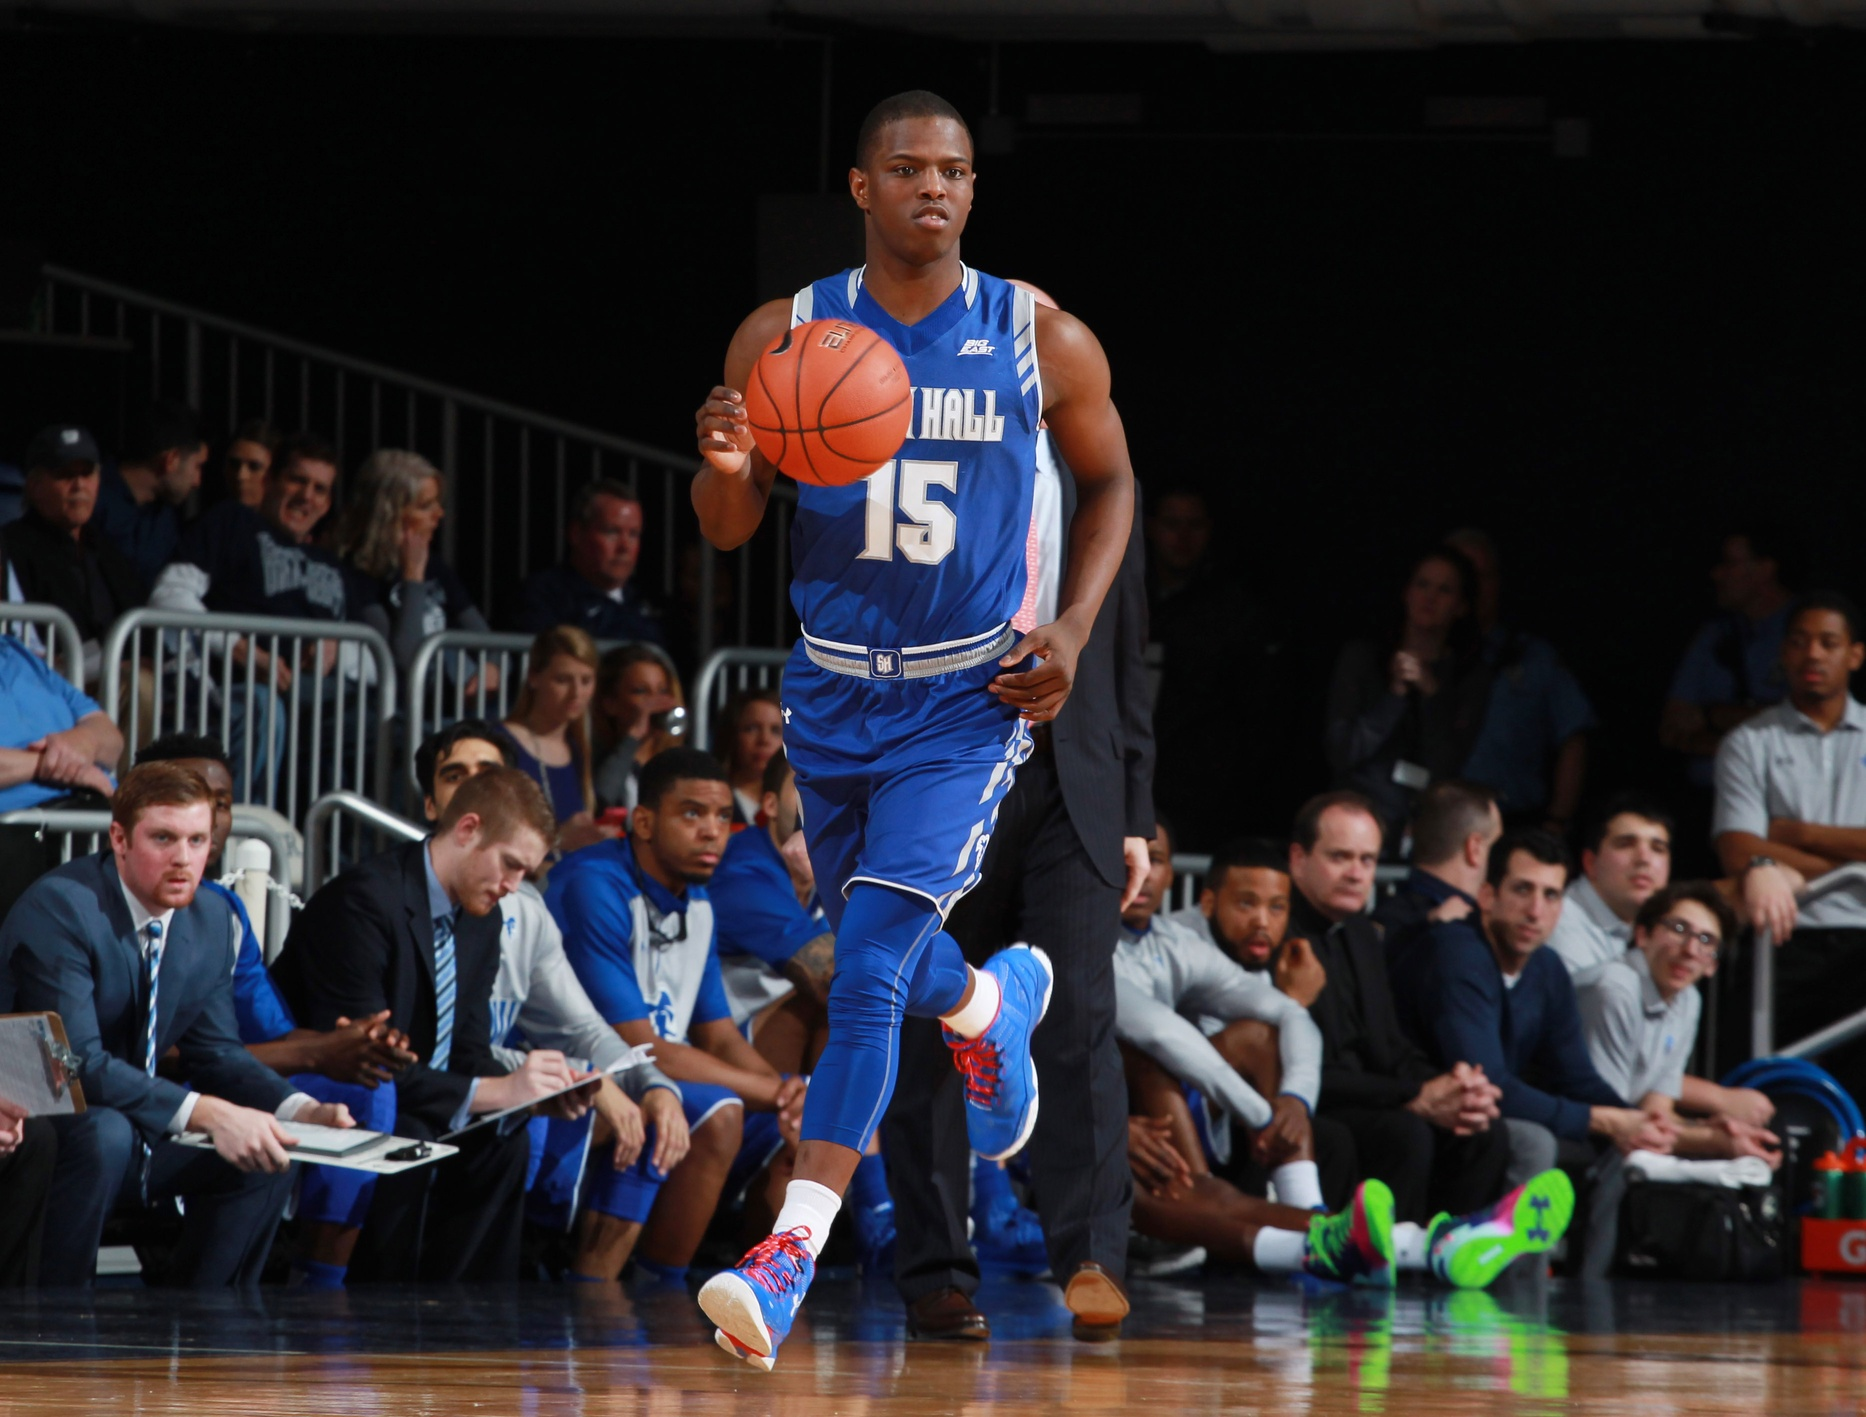 Isaiah Whitehead Led Seton Hall to Its Best Season in a Long While (USA Today Images)